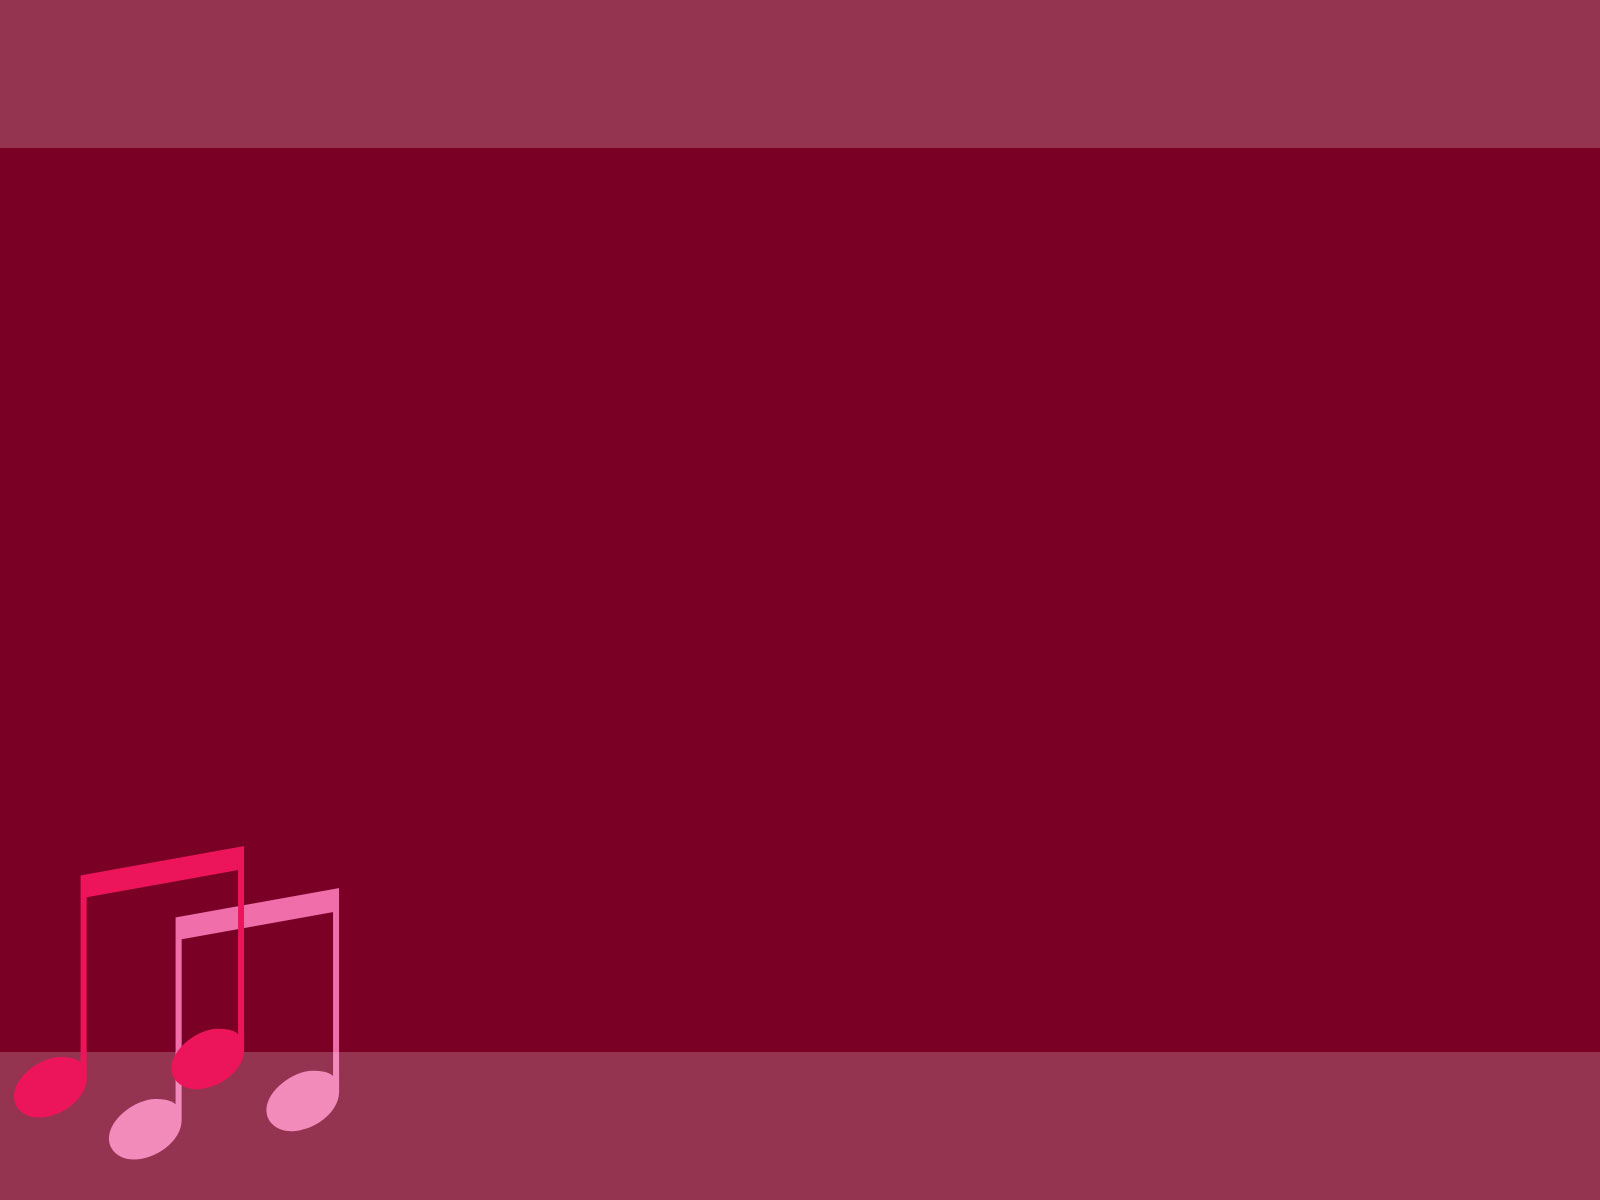 Pink Music PPT Backgrounds